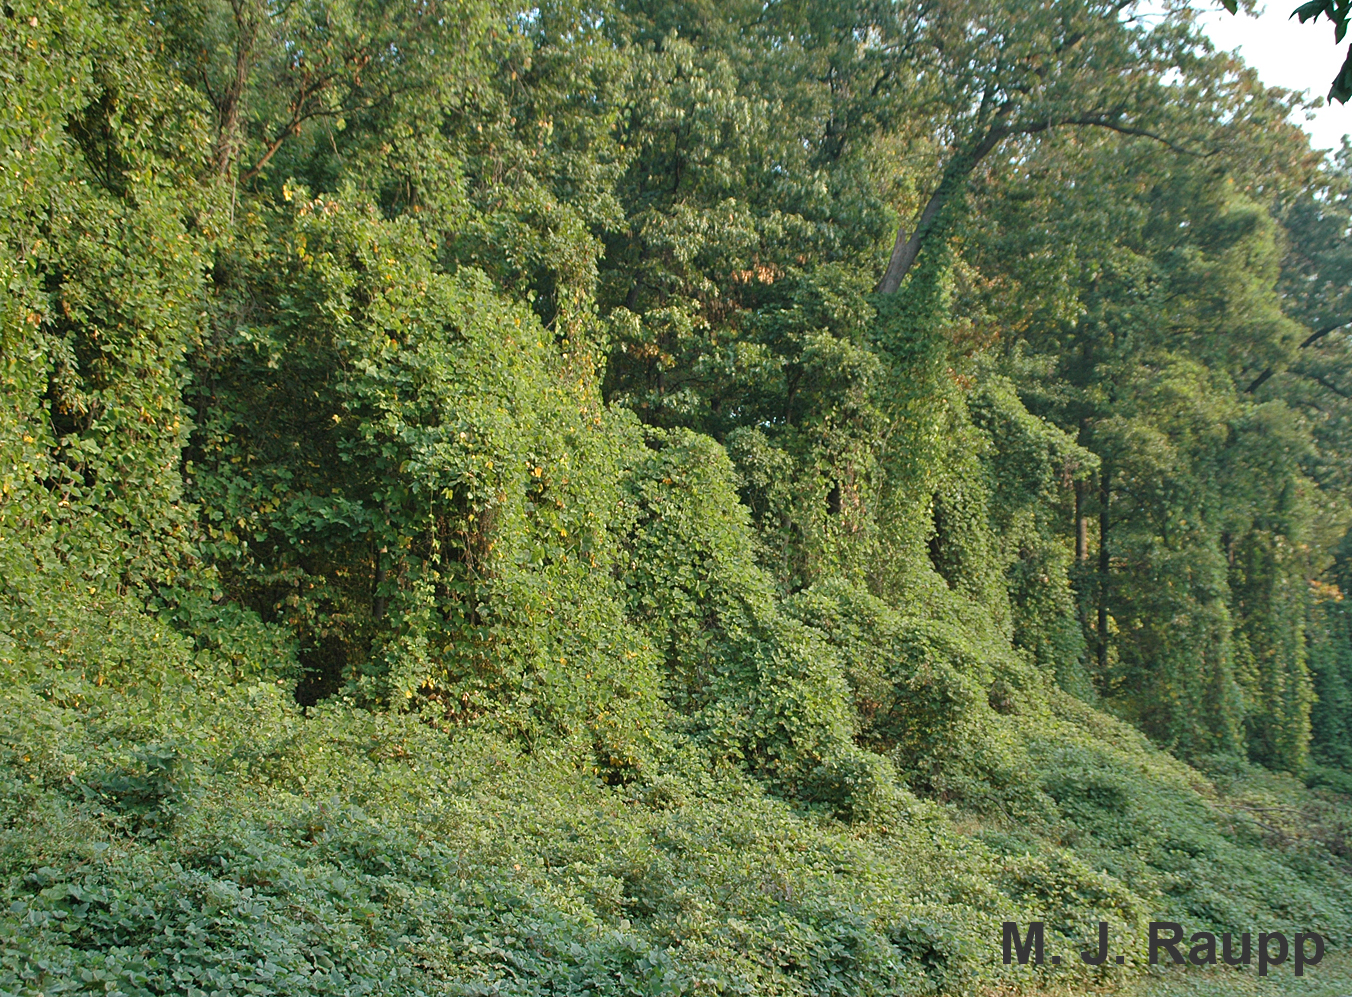 Kudzu engulfs surrounding trees and shrubs in landscapes.